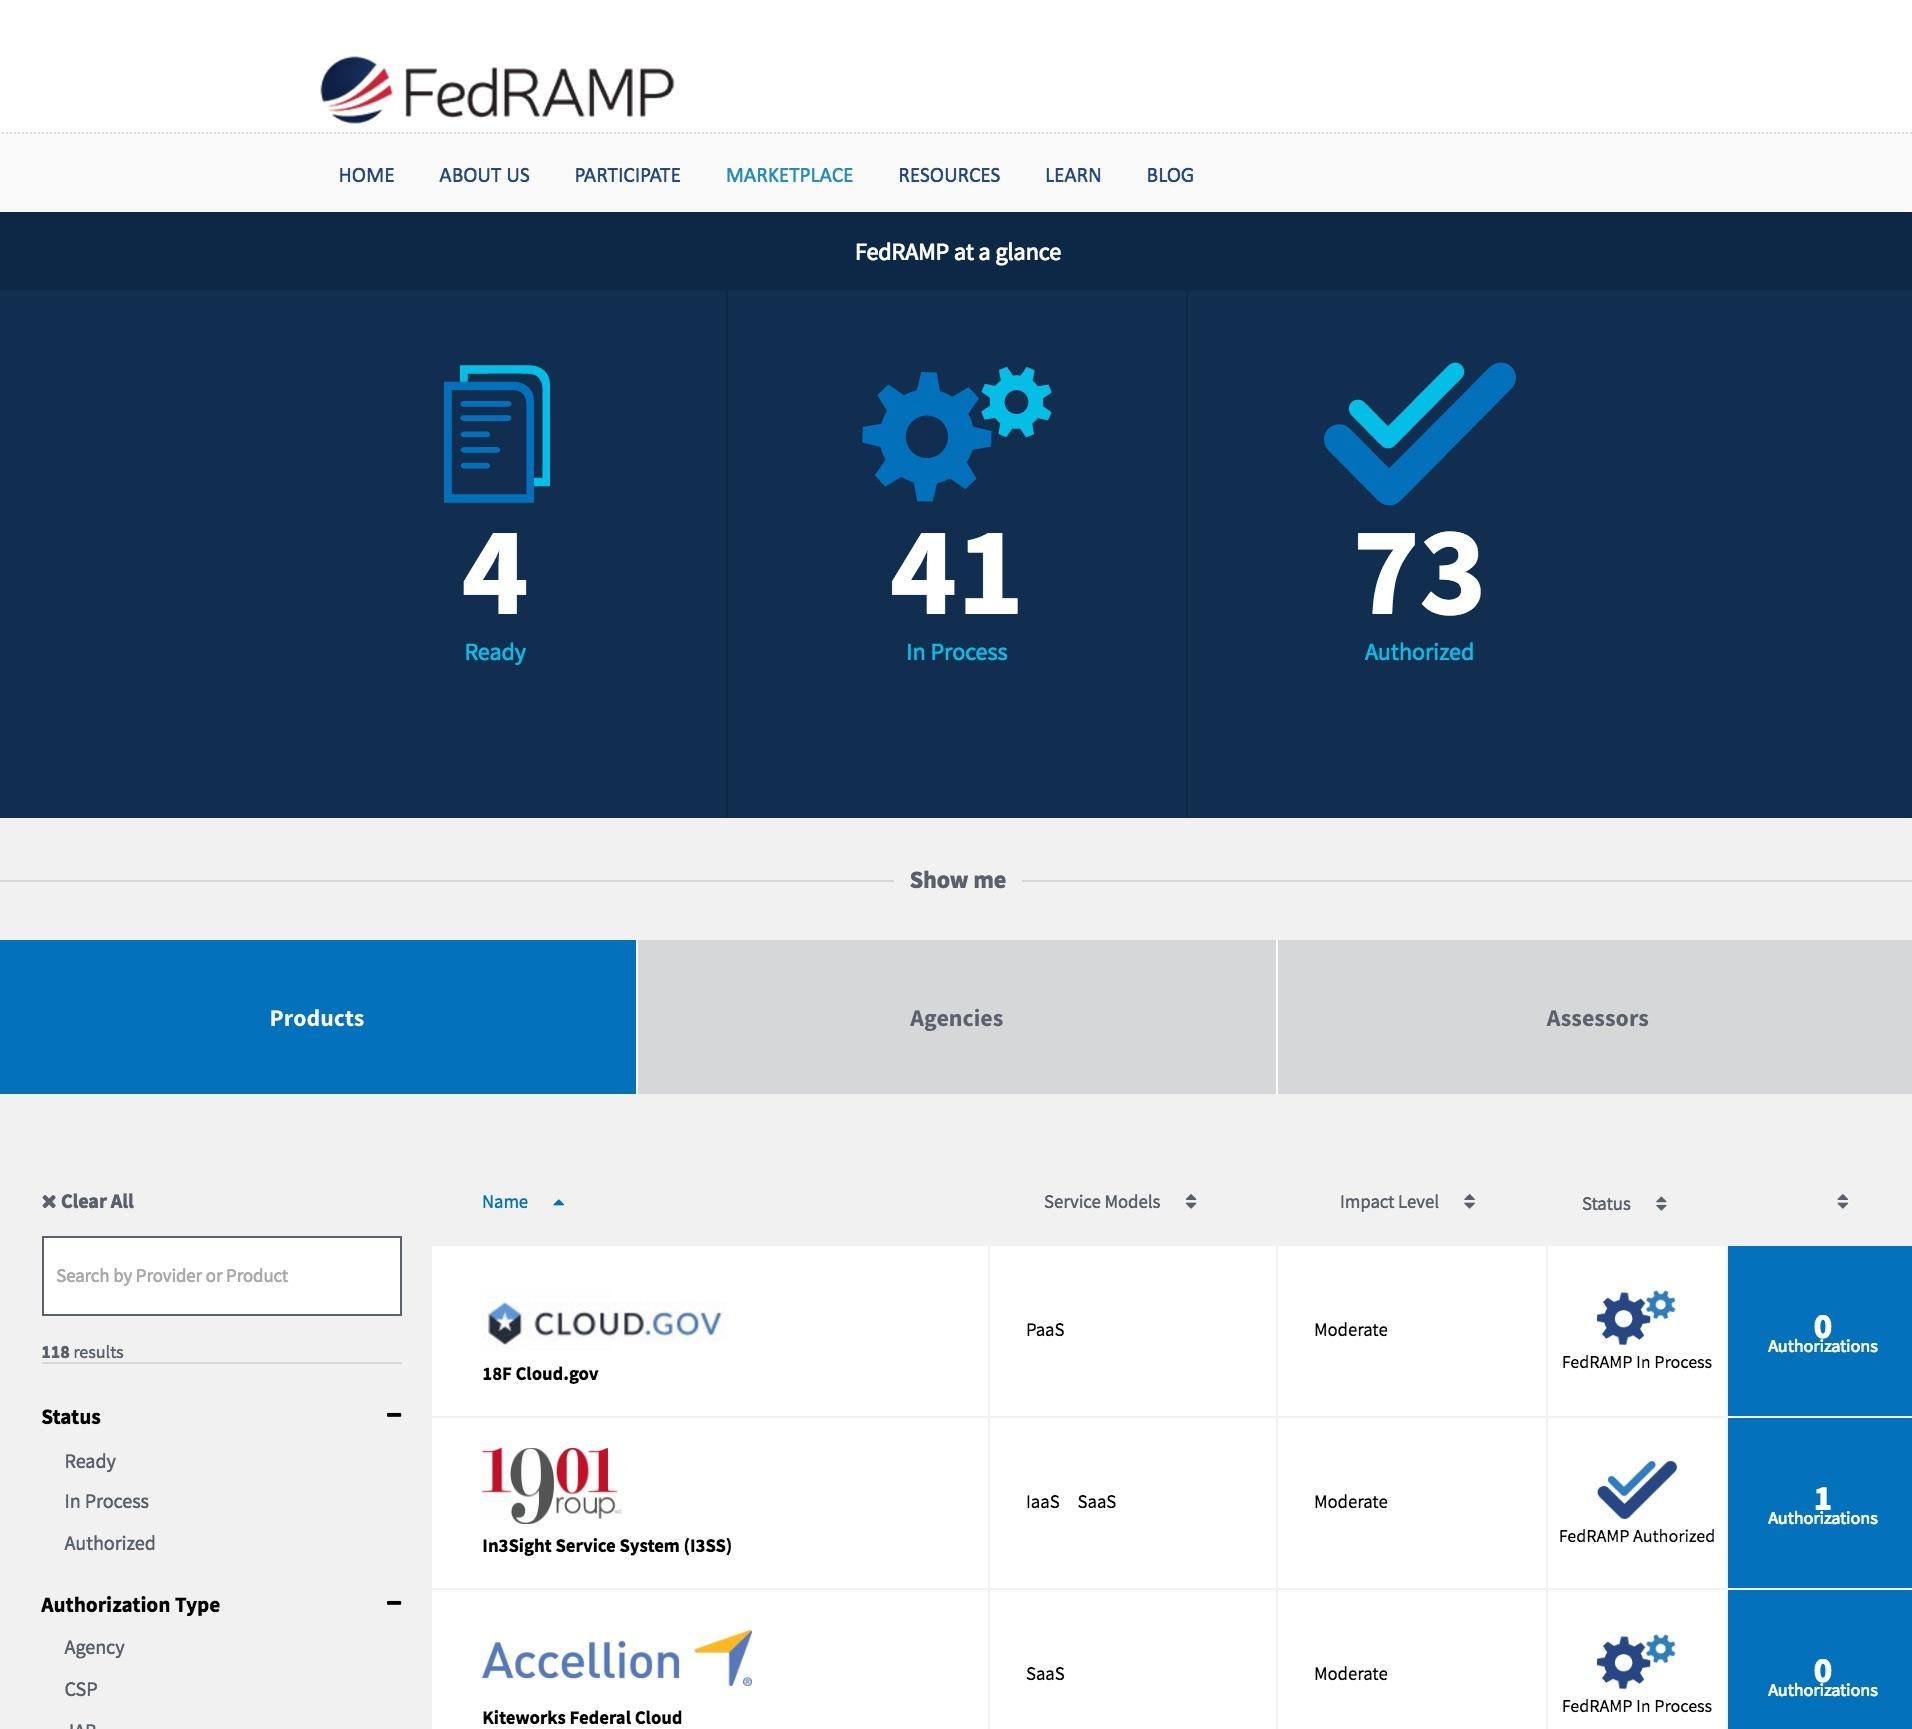 FedRAMP Marketplace Dashboard